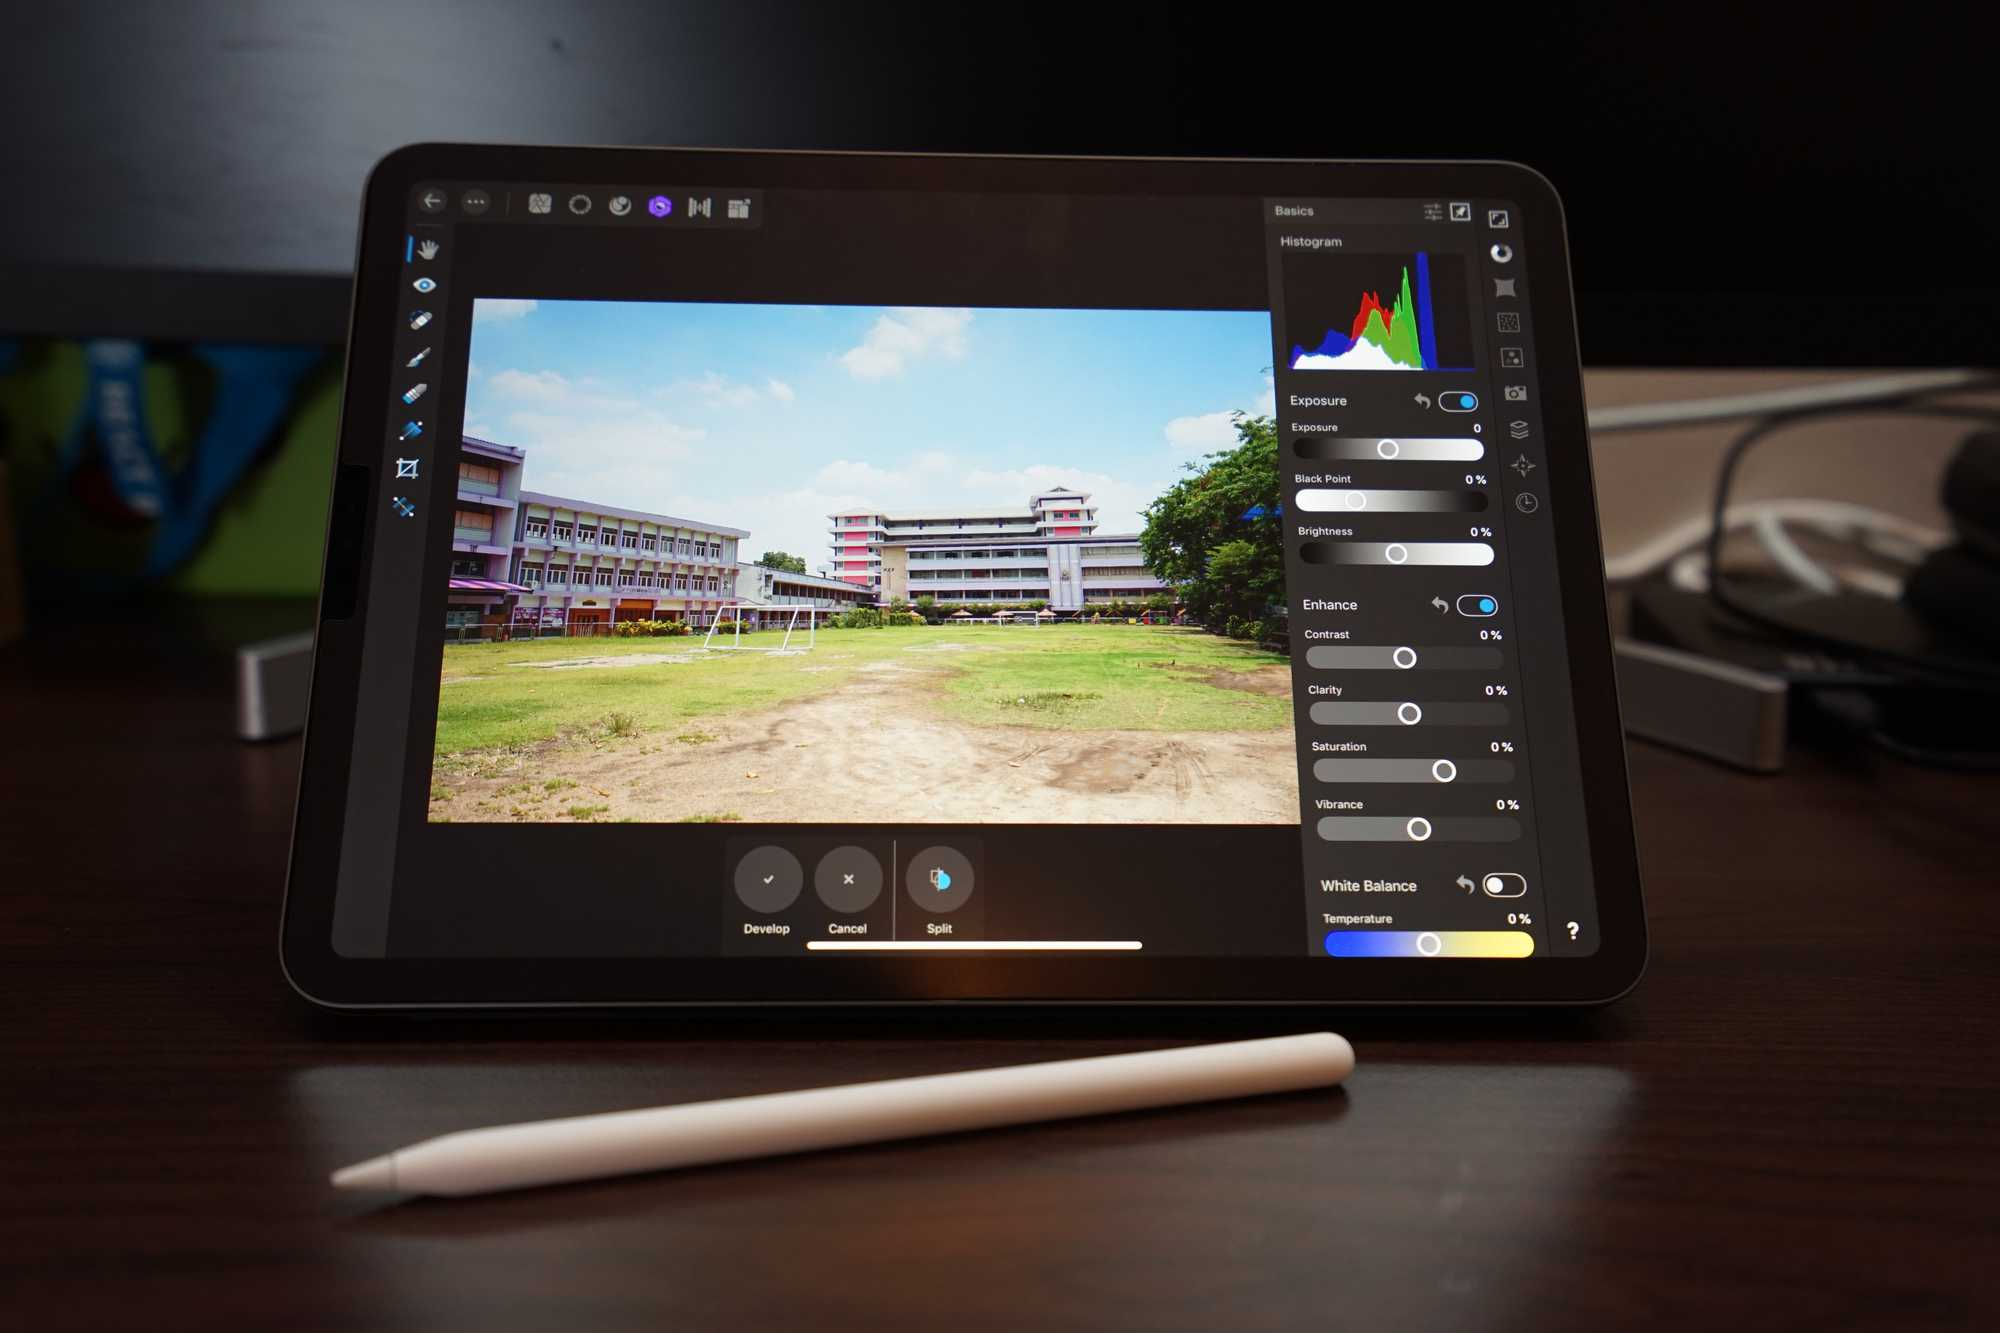 iPad Pro 11-inch with Affinity Photo